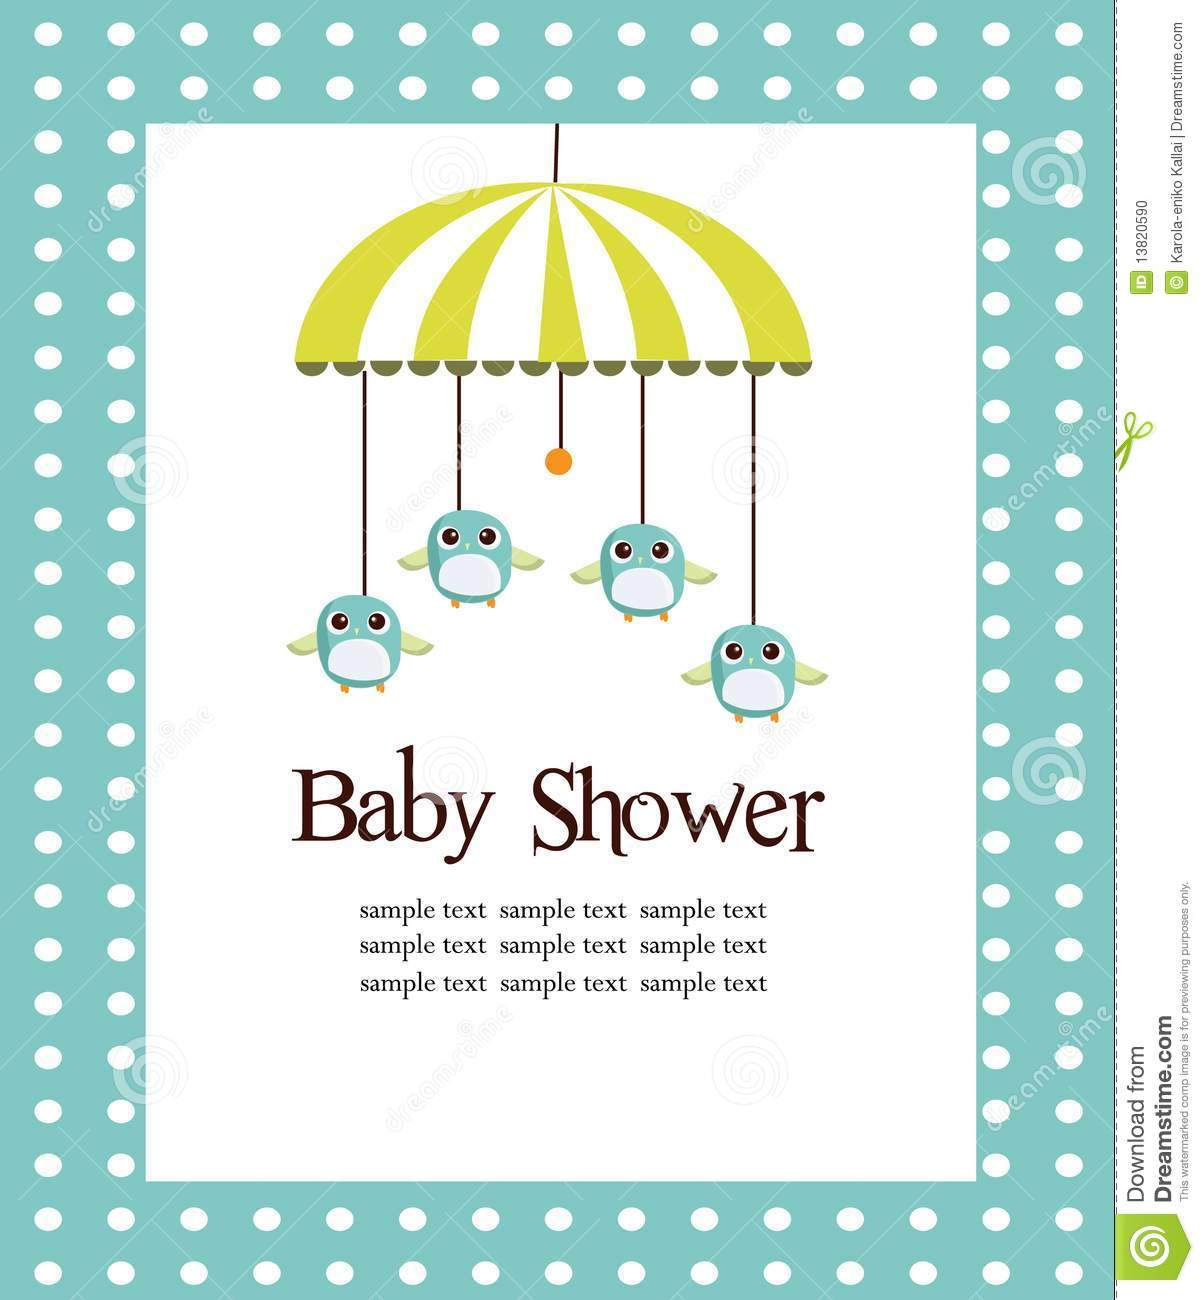 Unique Gifts Ideas Boy Baby Shower Wallpaper Wallpapersafari